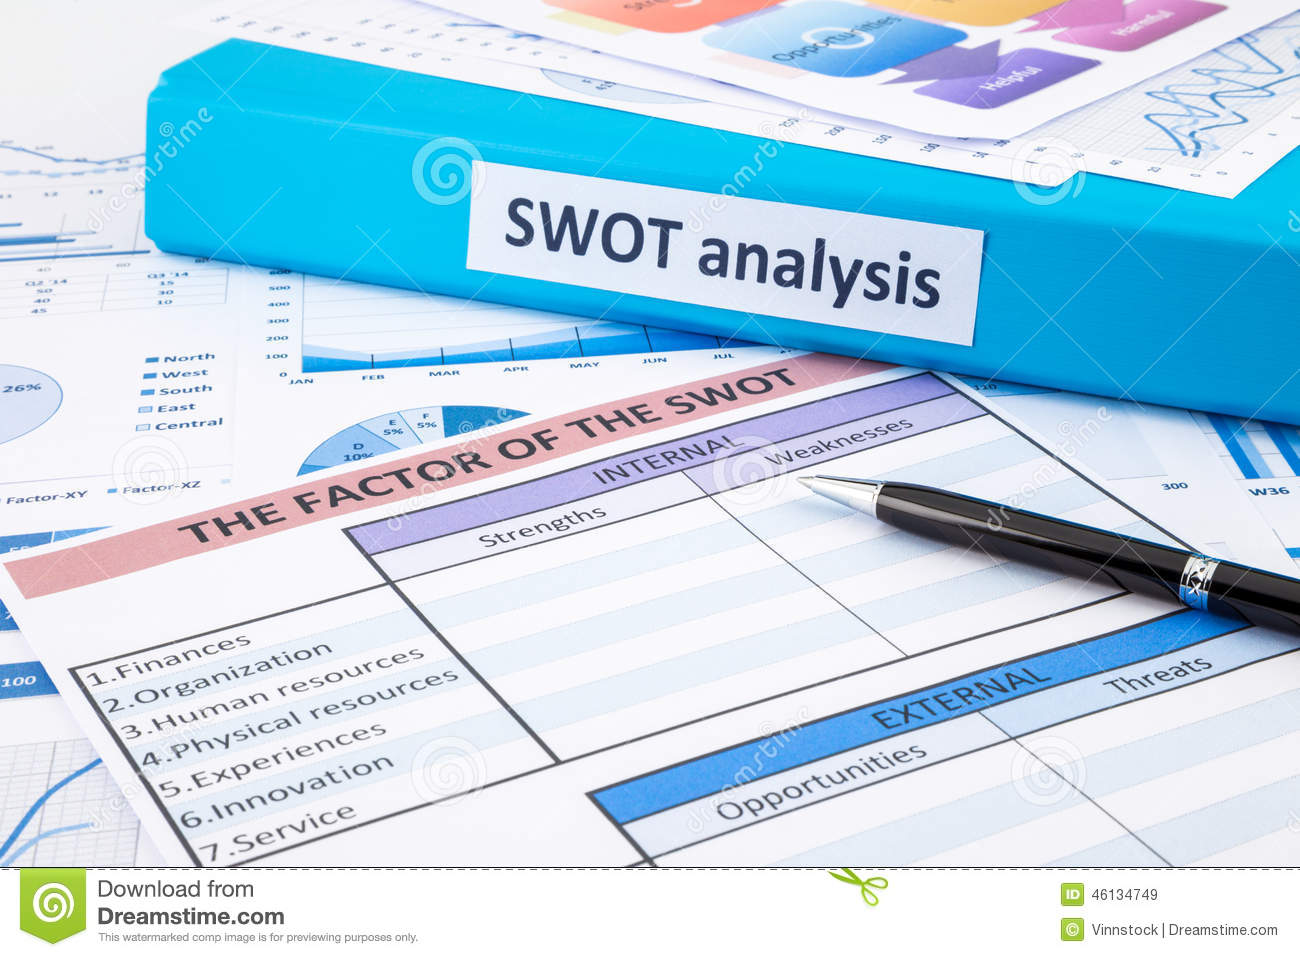 swot analysis for cango Cango swot analysis an analysis of the humor in a midsummer nights dream by william shakespeare rules about school essay values and ethics in america case culinary institute of america essay requirements warfare an invention not a biological necessity thesis essay test series reward management history.